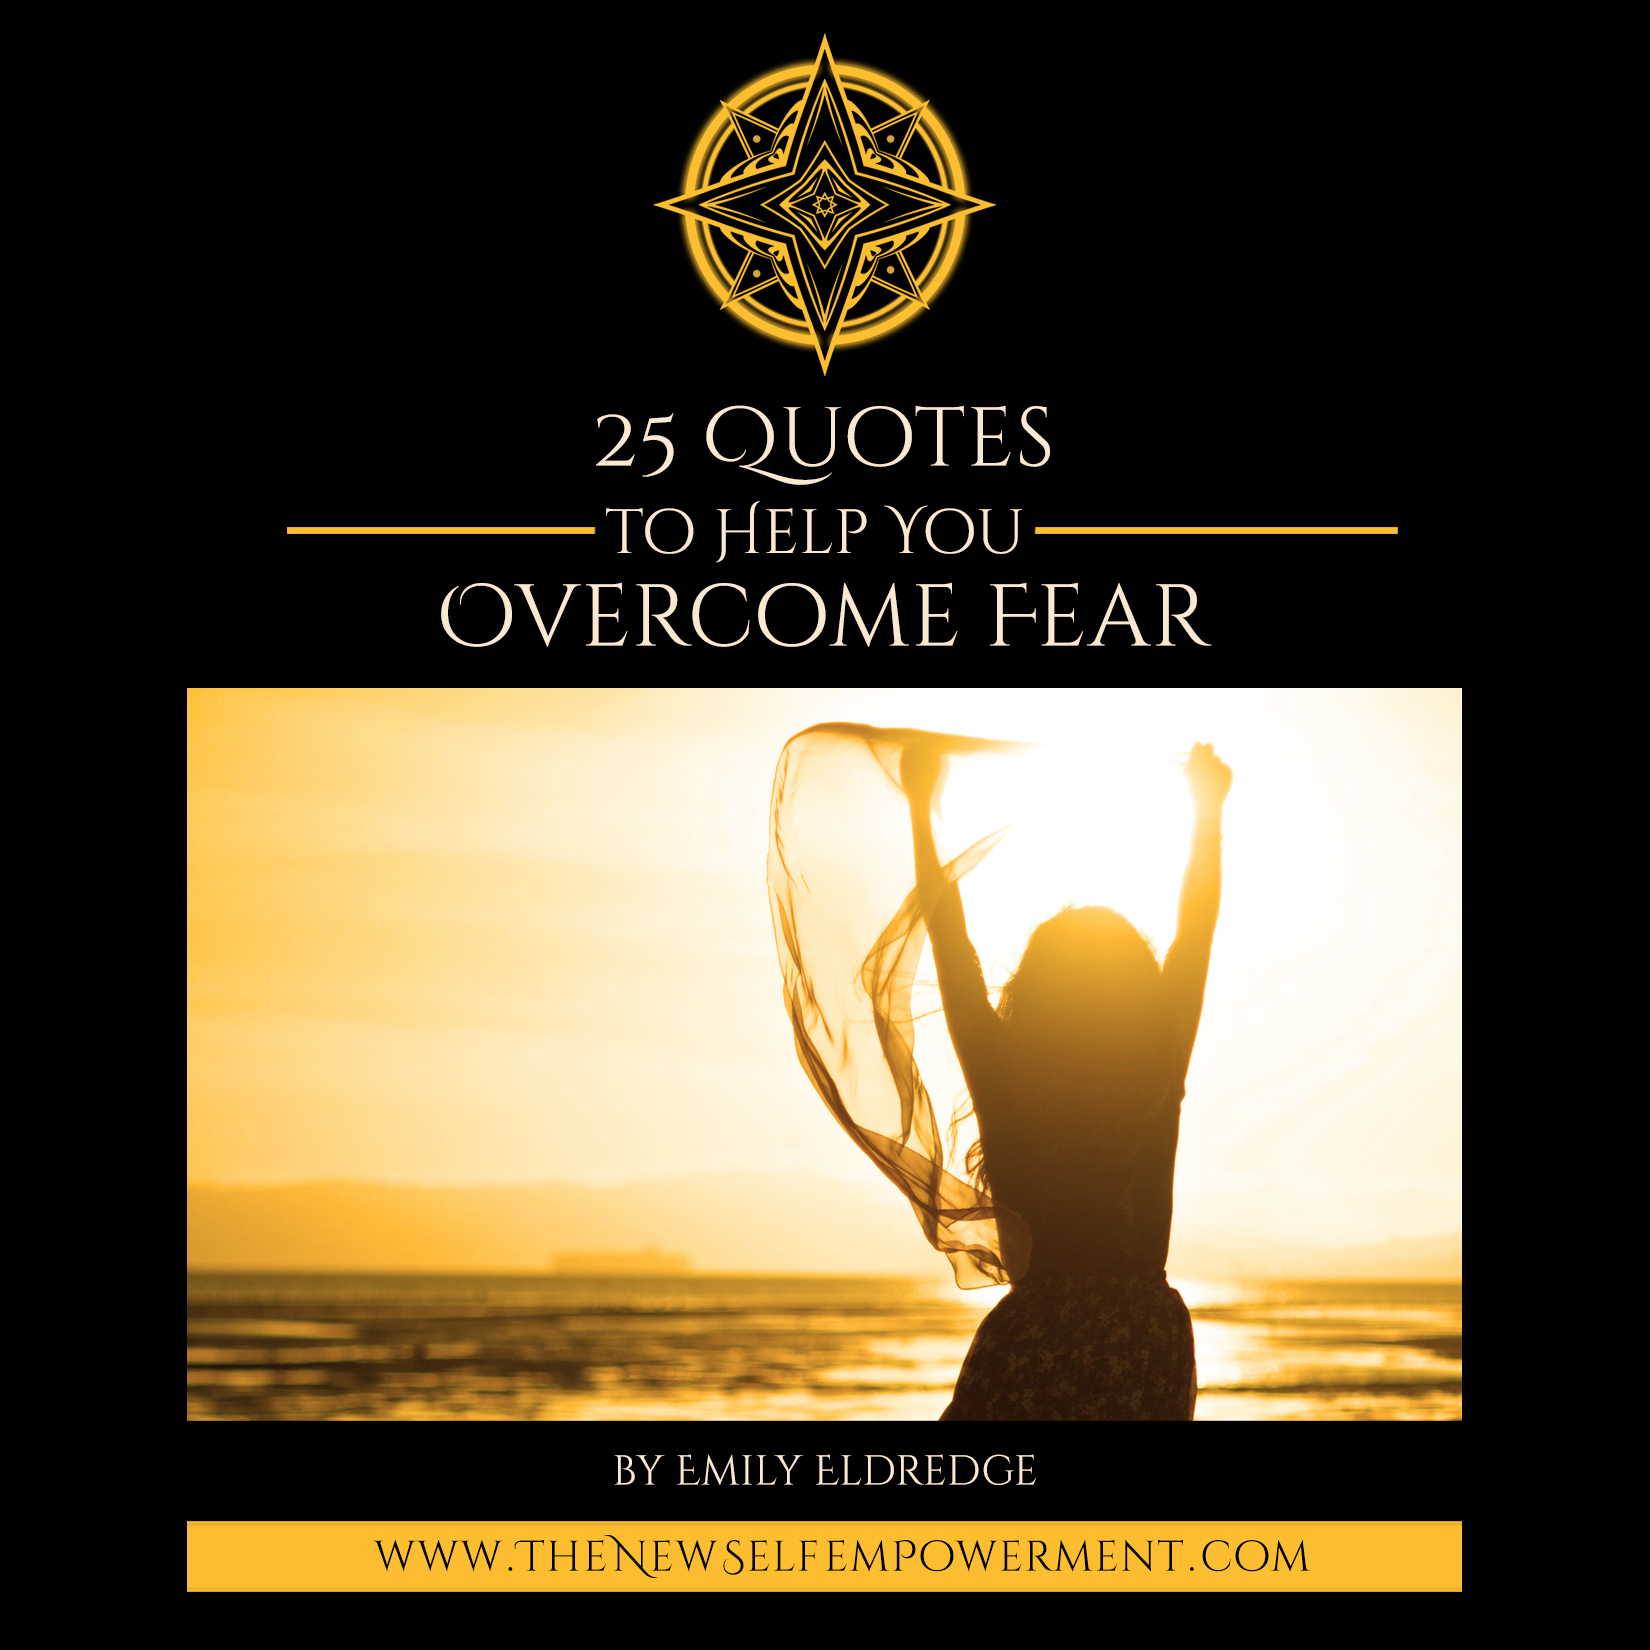 25-QUOTES-BOOK-FEAR-Cover